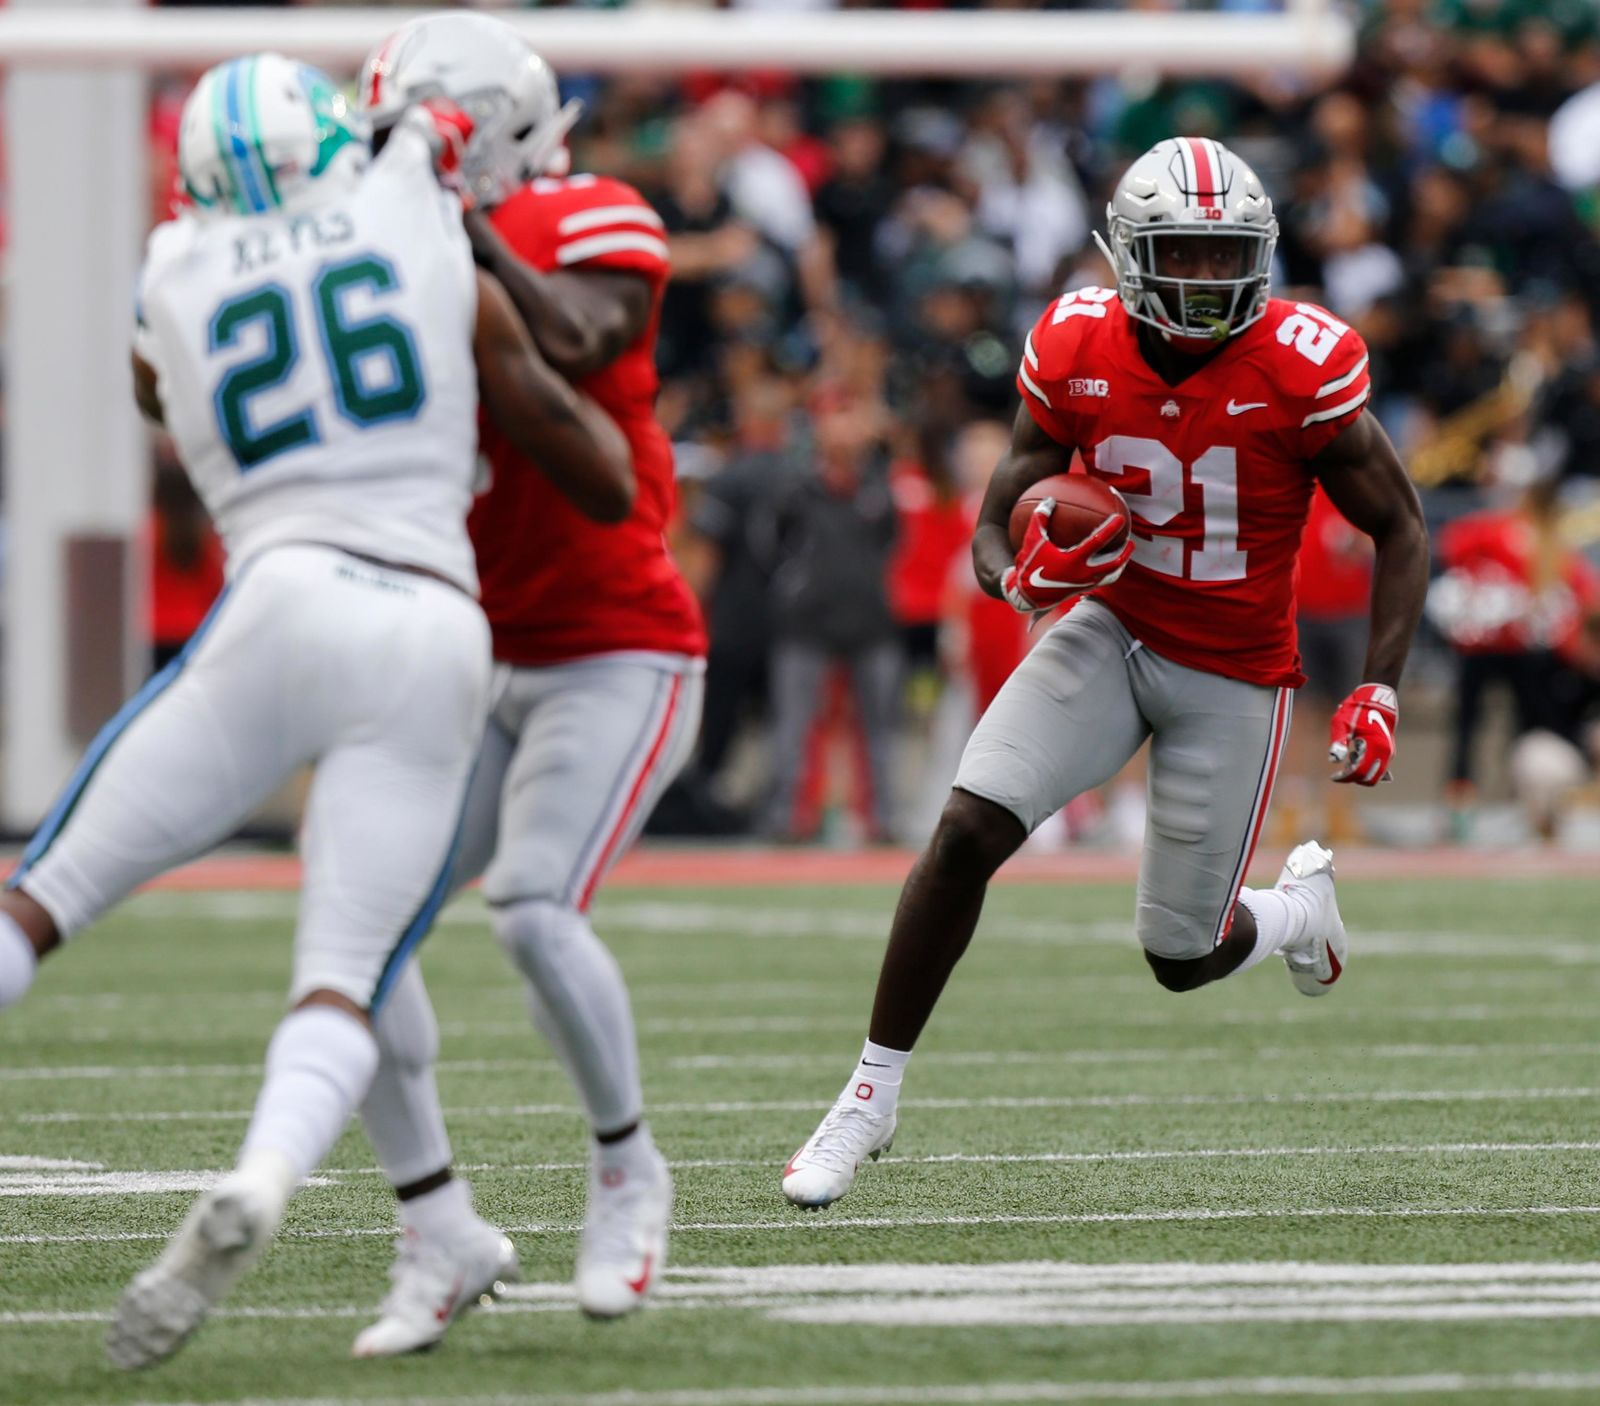 Ohio State receiver Parris Campbell cuts up field after a catch against Tulane during the first half of an NCAA college football game Saturday, Sept. 22, 2018, in Columbus, Ohio. (AP Photo/Jay LaPrete)